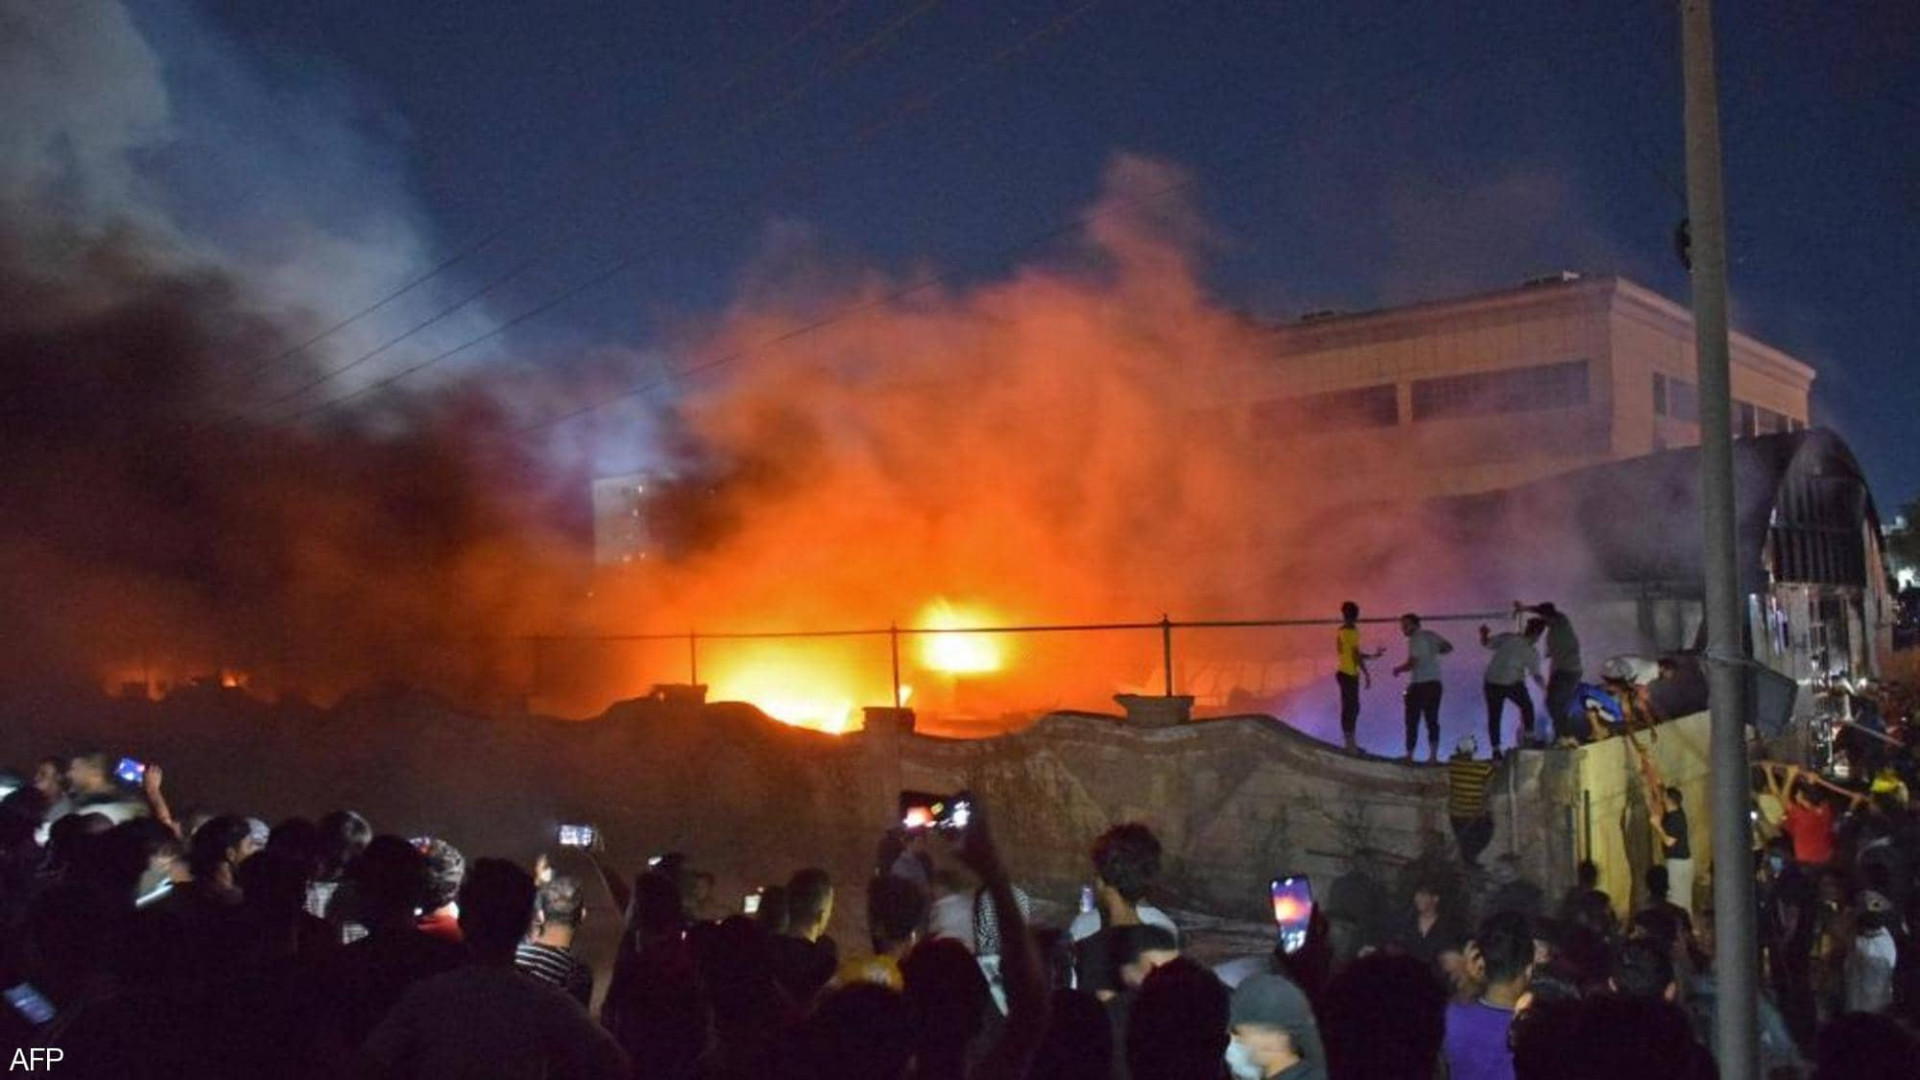 Iran: Deadly Response to Water Protests, Report